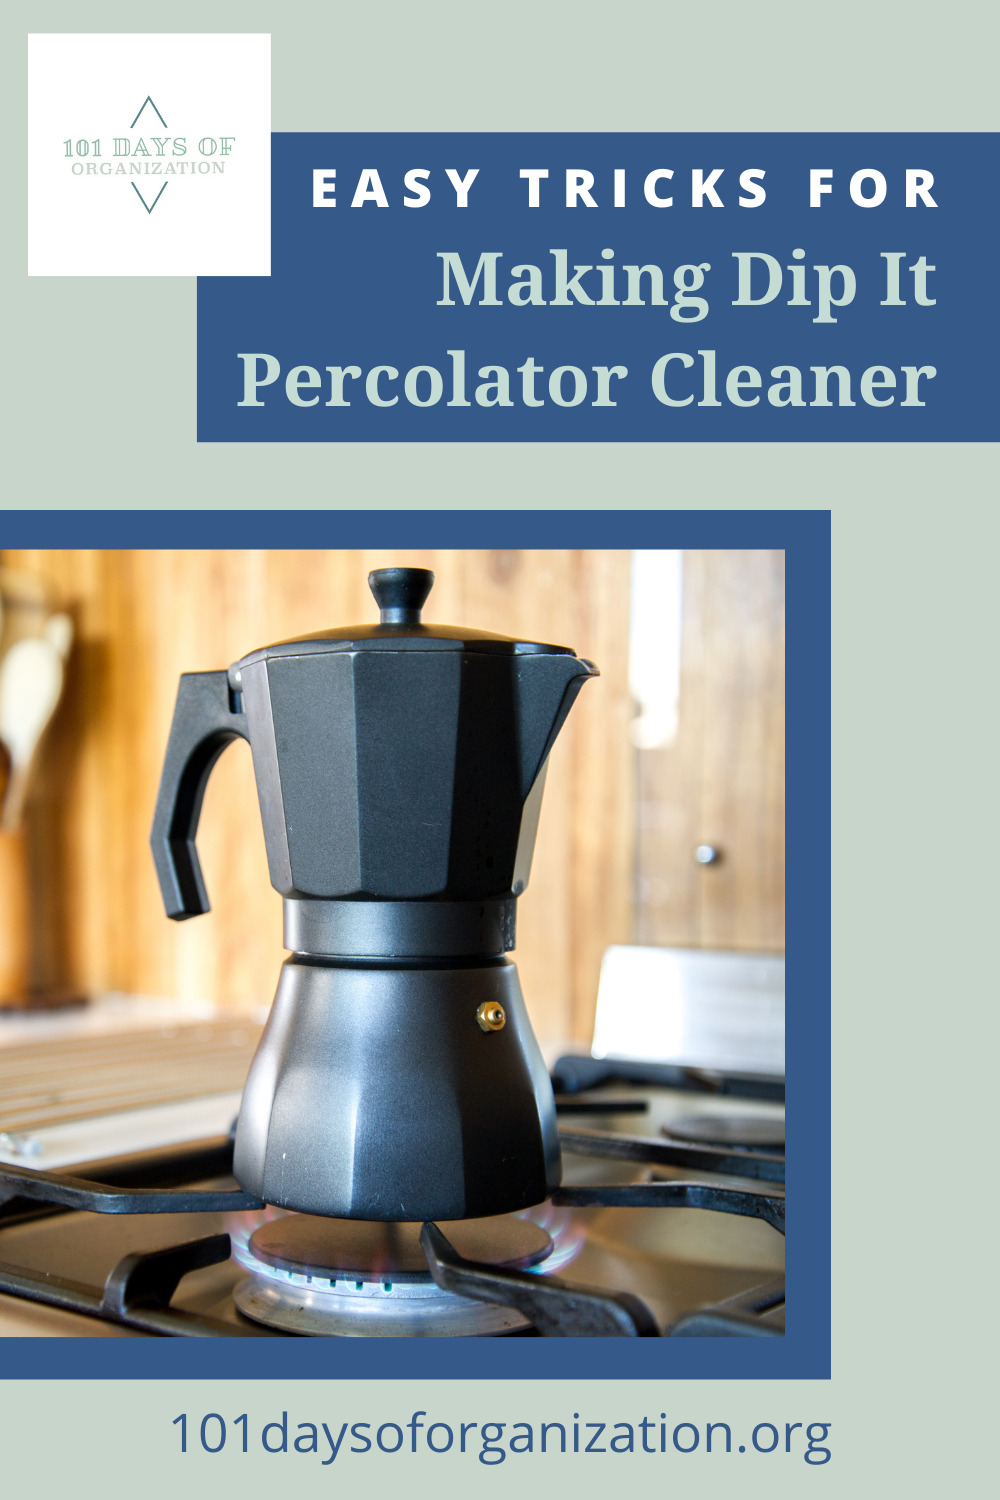 101daysoforganization.org makes cleaning and organizing your home simple, easy, and fun! Find loads of ideas to make tricky cleaning job a breeze. Find out now how you can make your very own Dip It Percolator Cleaner!